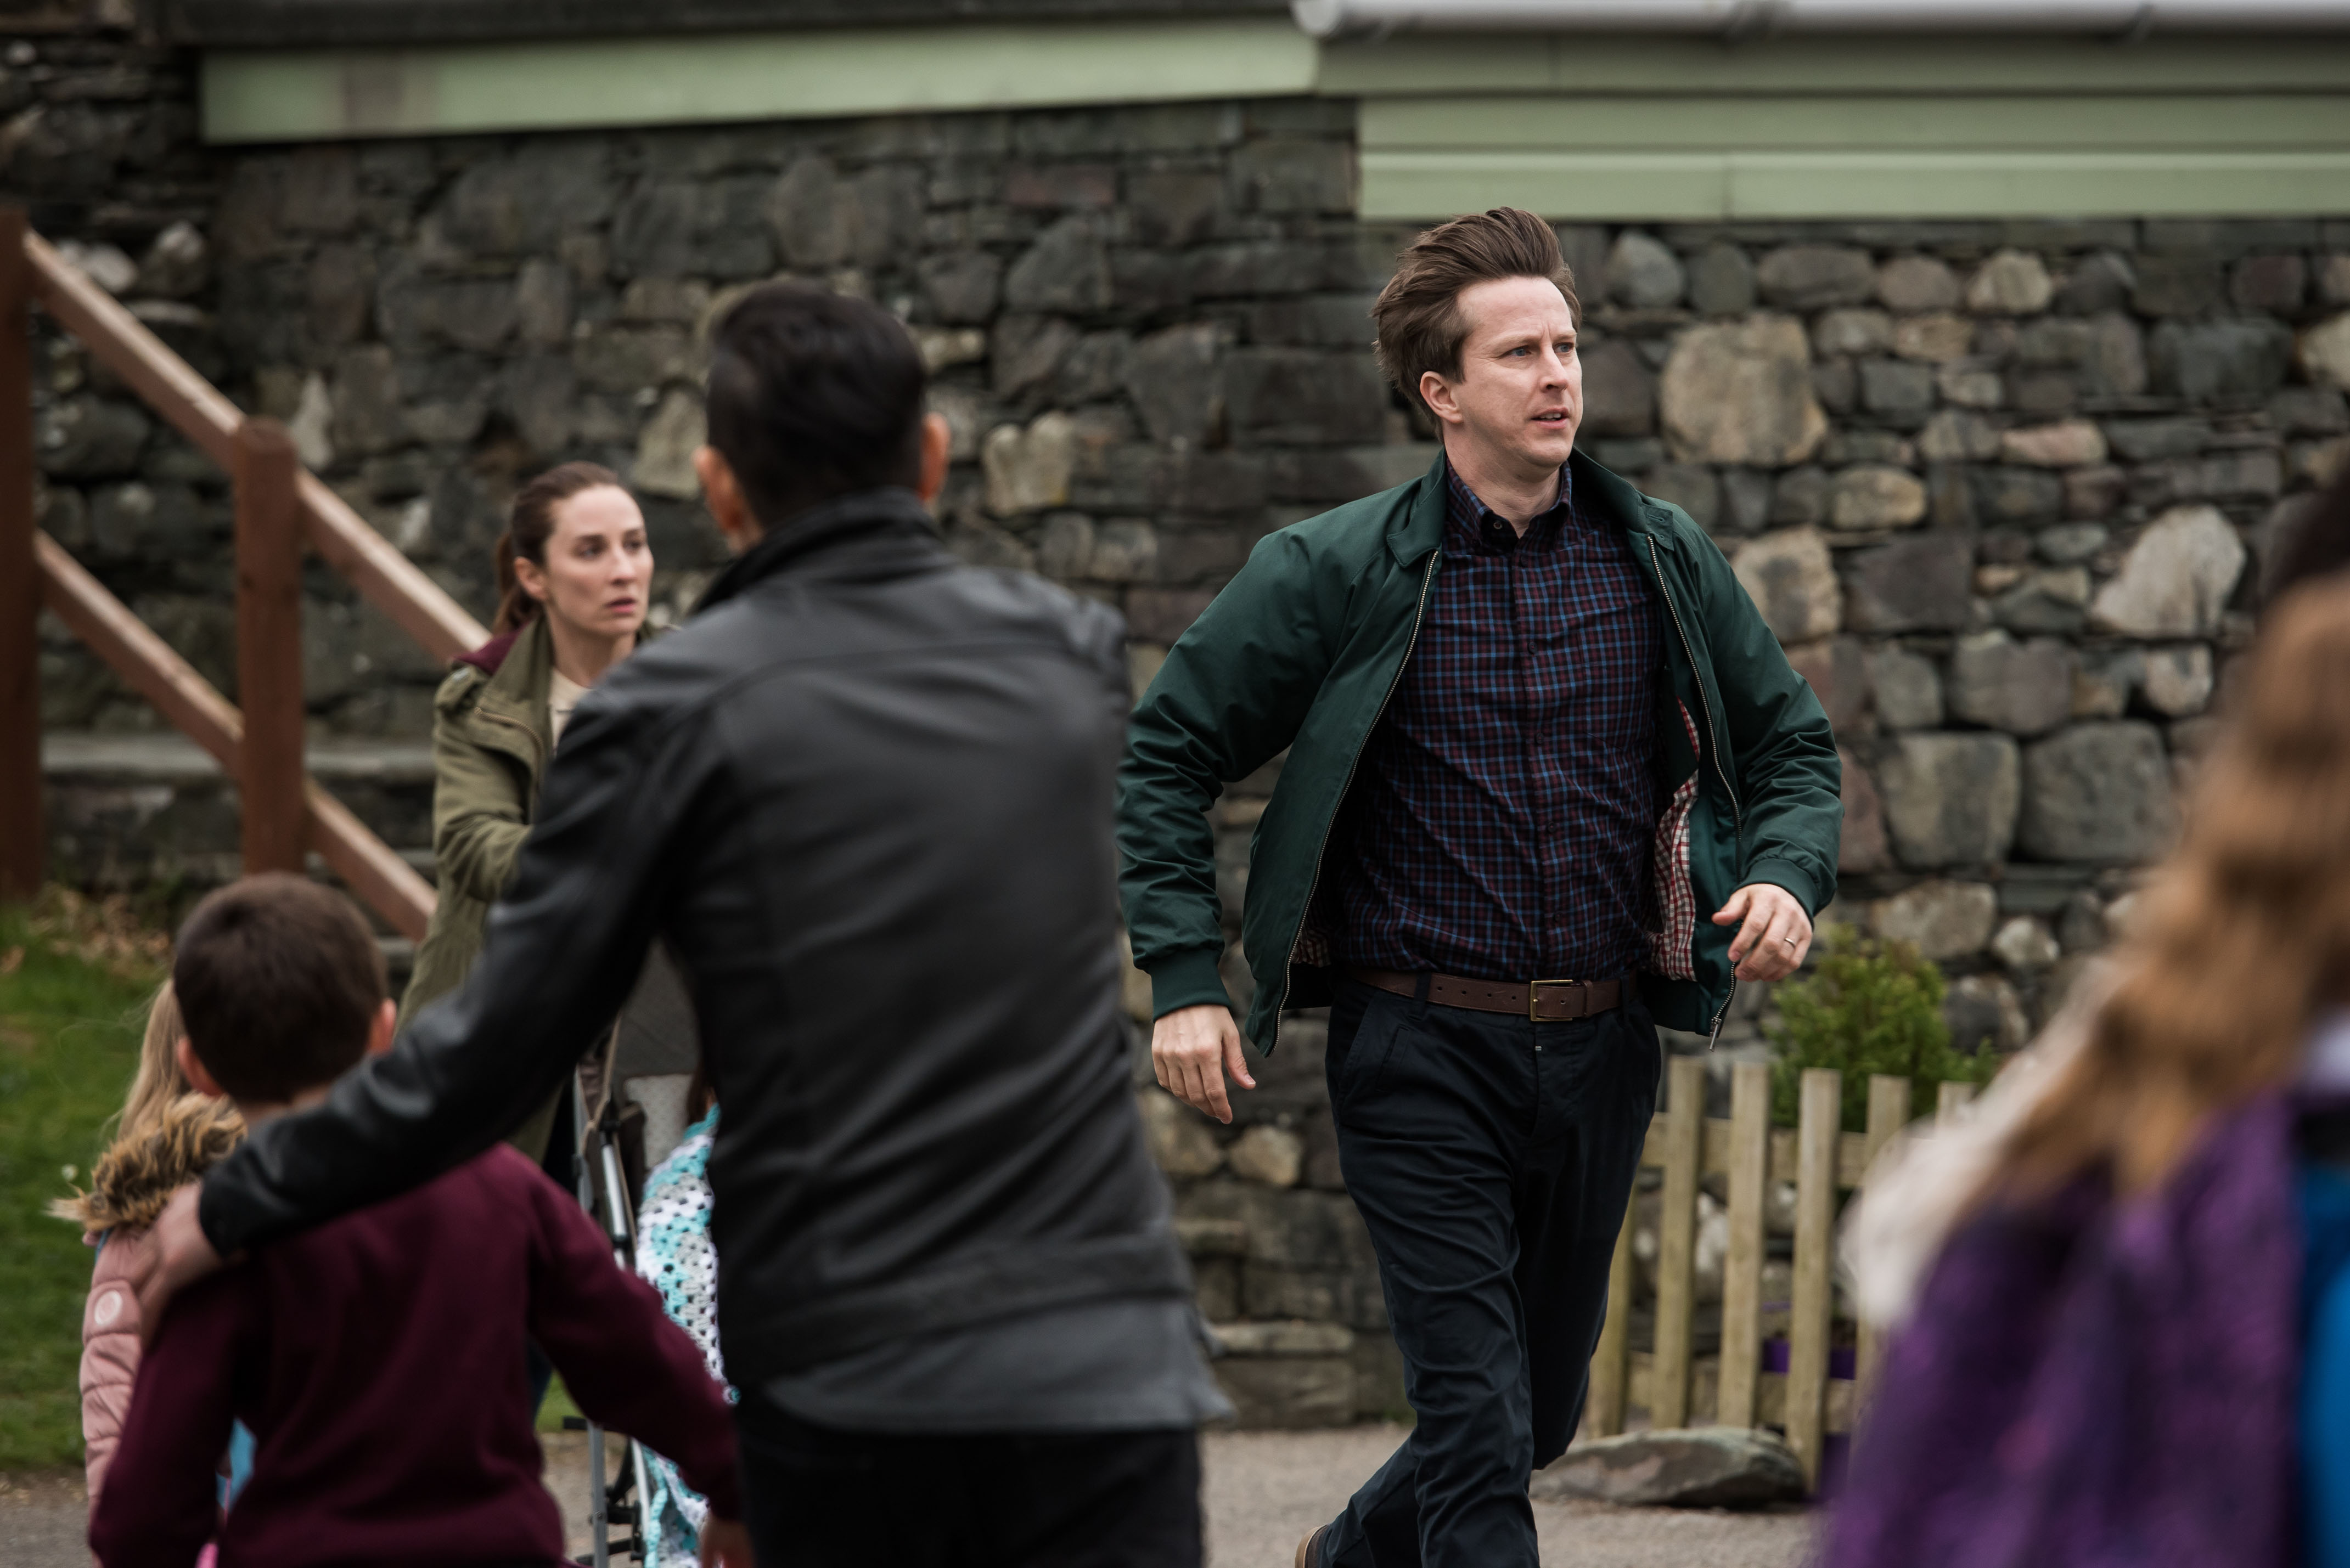 Programme Name: The A word S2 - TX: 07/11/2017 - Episode: n/a (No. n/a) - Picture Shows: Alison Hughes (MORVEN CHRISTIE), Paul Hughes (LEE INGLEBY) - (C) Fifty Fathoms - Photographer: James Stack